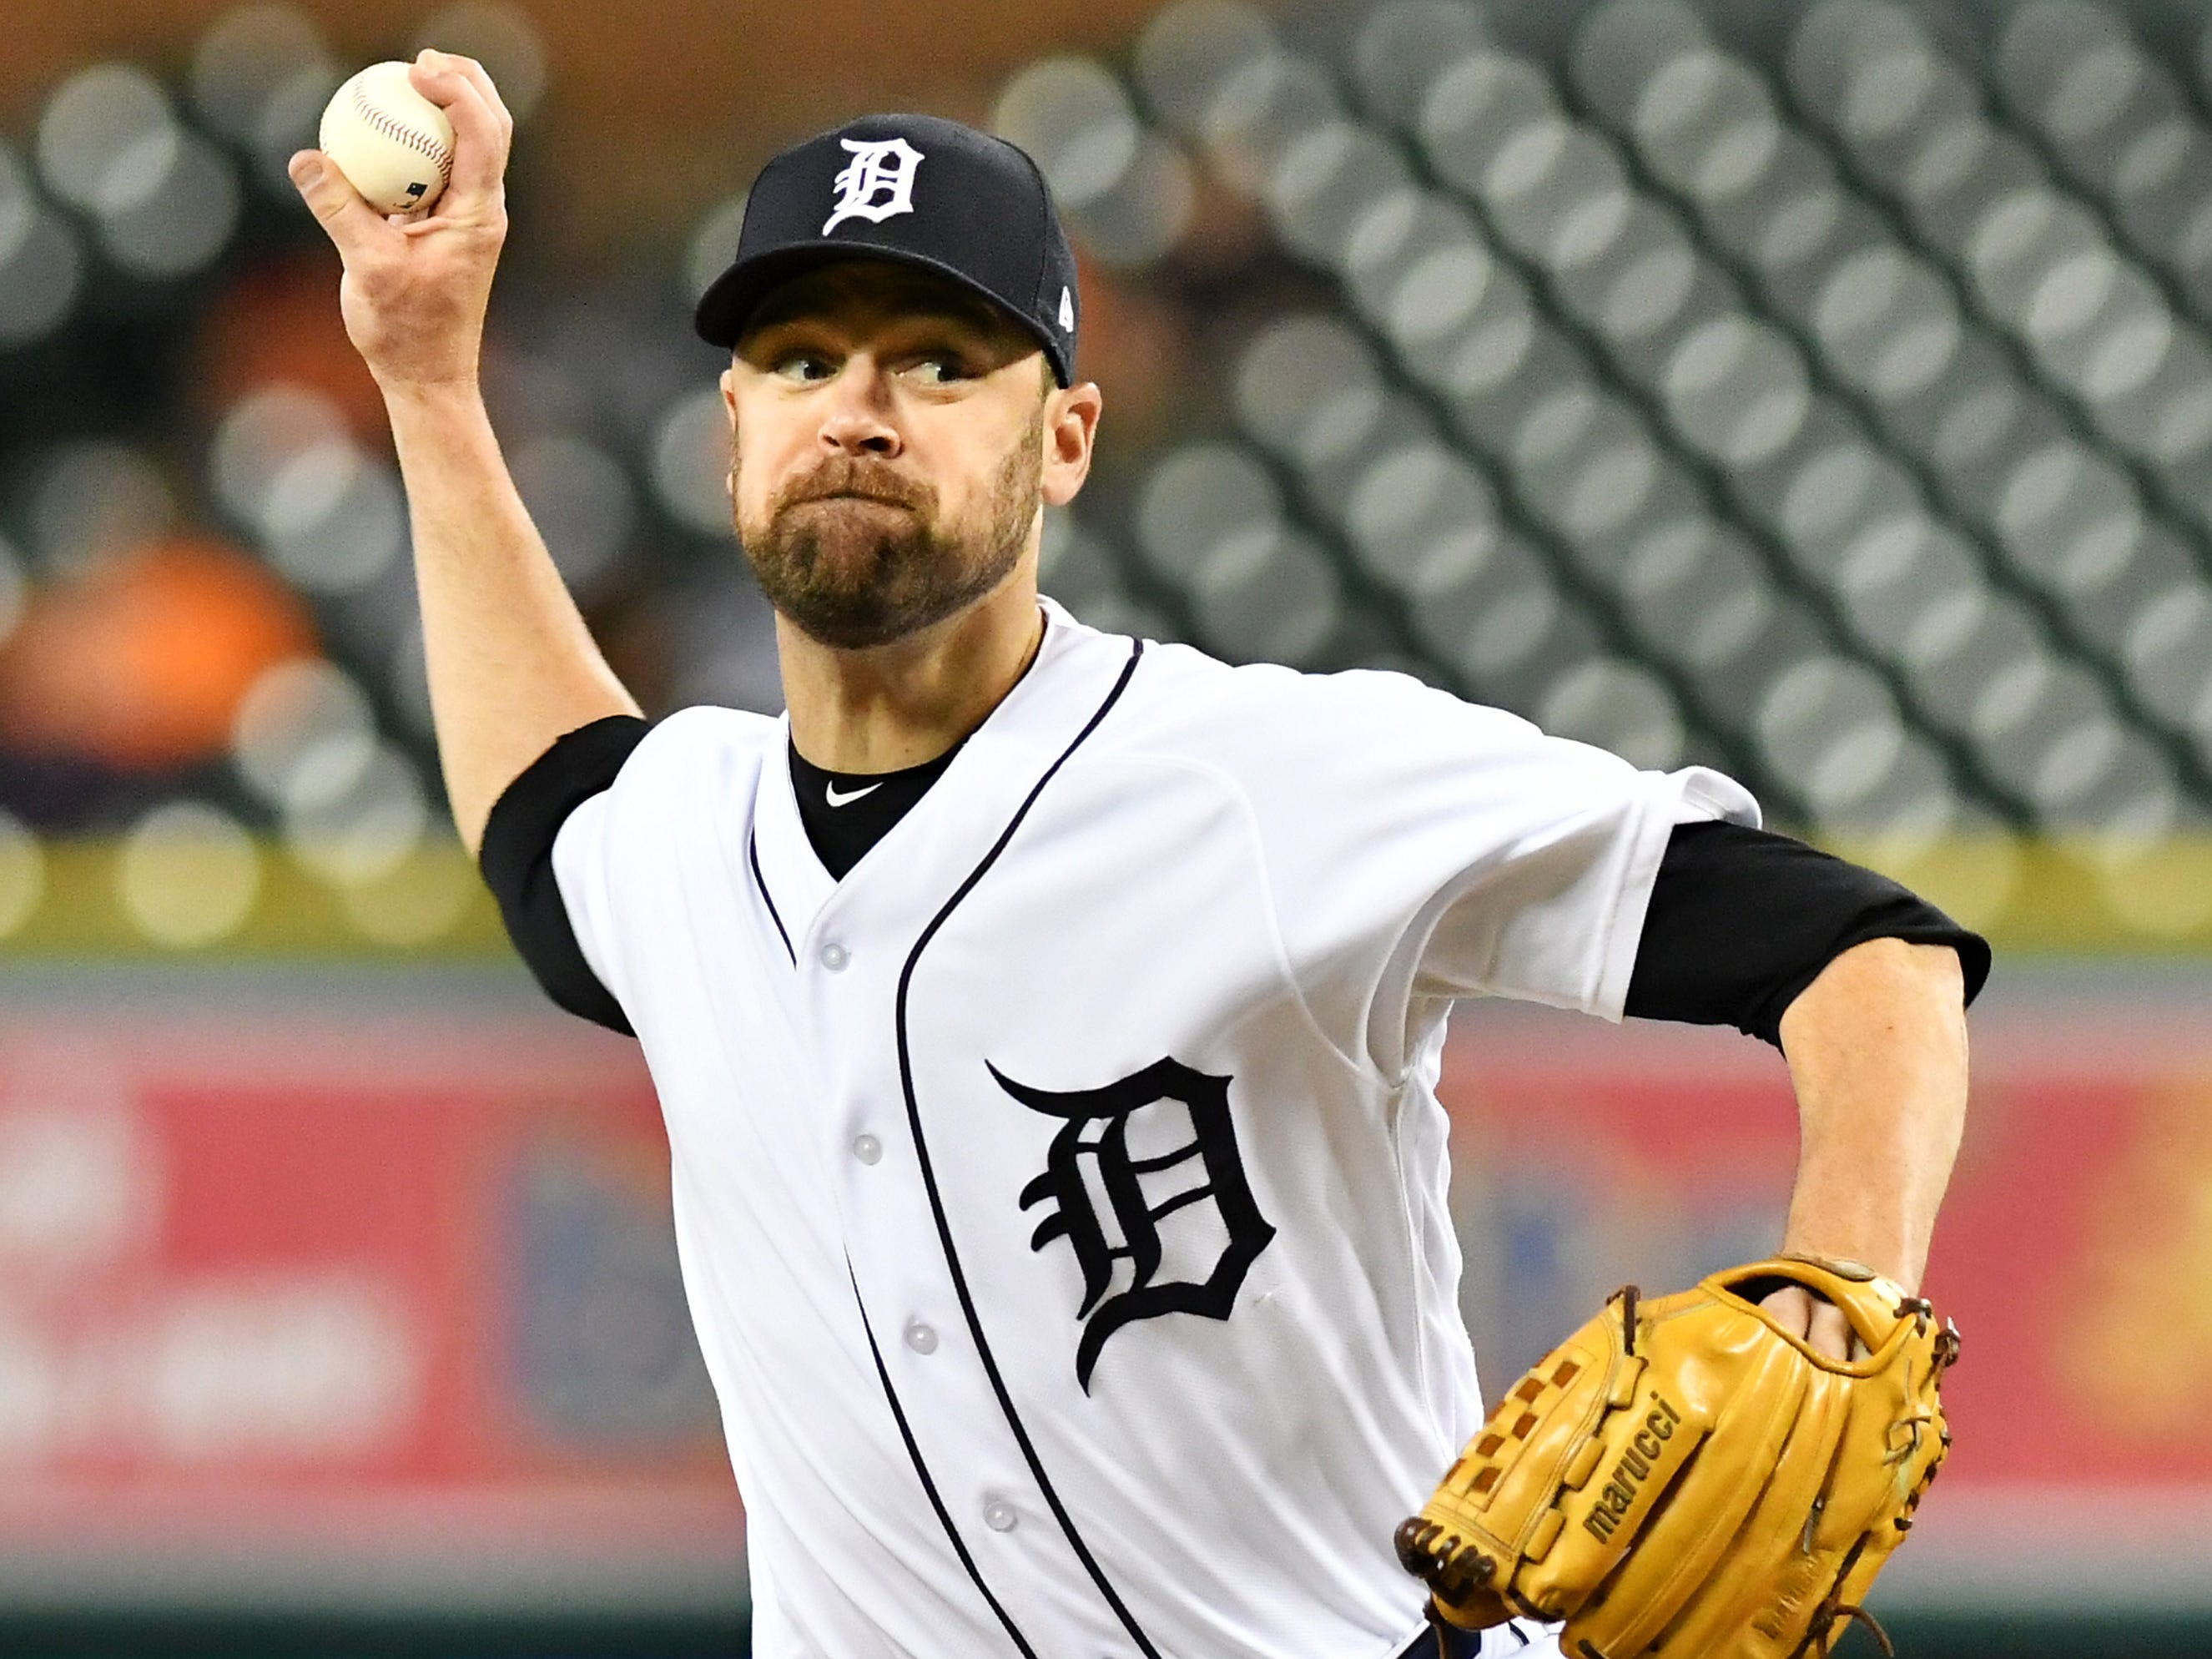 Louis Coleman (4-1. 3.51, 1.31): He was a useful change-of-pace reliever for the Tigers. His three-quarter delivery and array of off-speed and breaking balls gave opponents a different look. He allowed runs in just six of 26 outings after the All-Star break, holding hitters to a .205 average. He walked 10 in that span, which is what typically got him into trouble.    Mid-term grade: B Second-half grade: C Final grade: C-plus